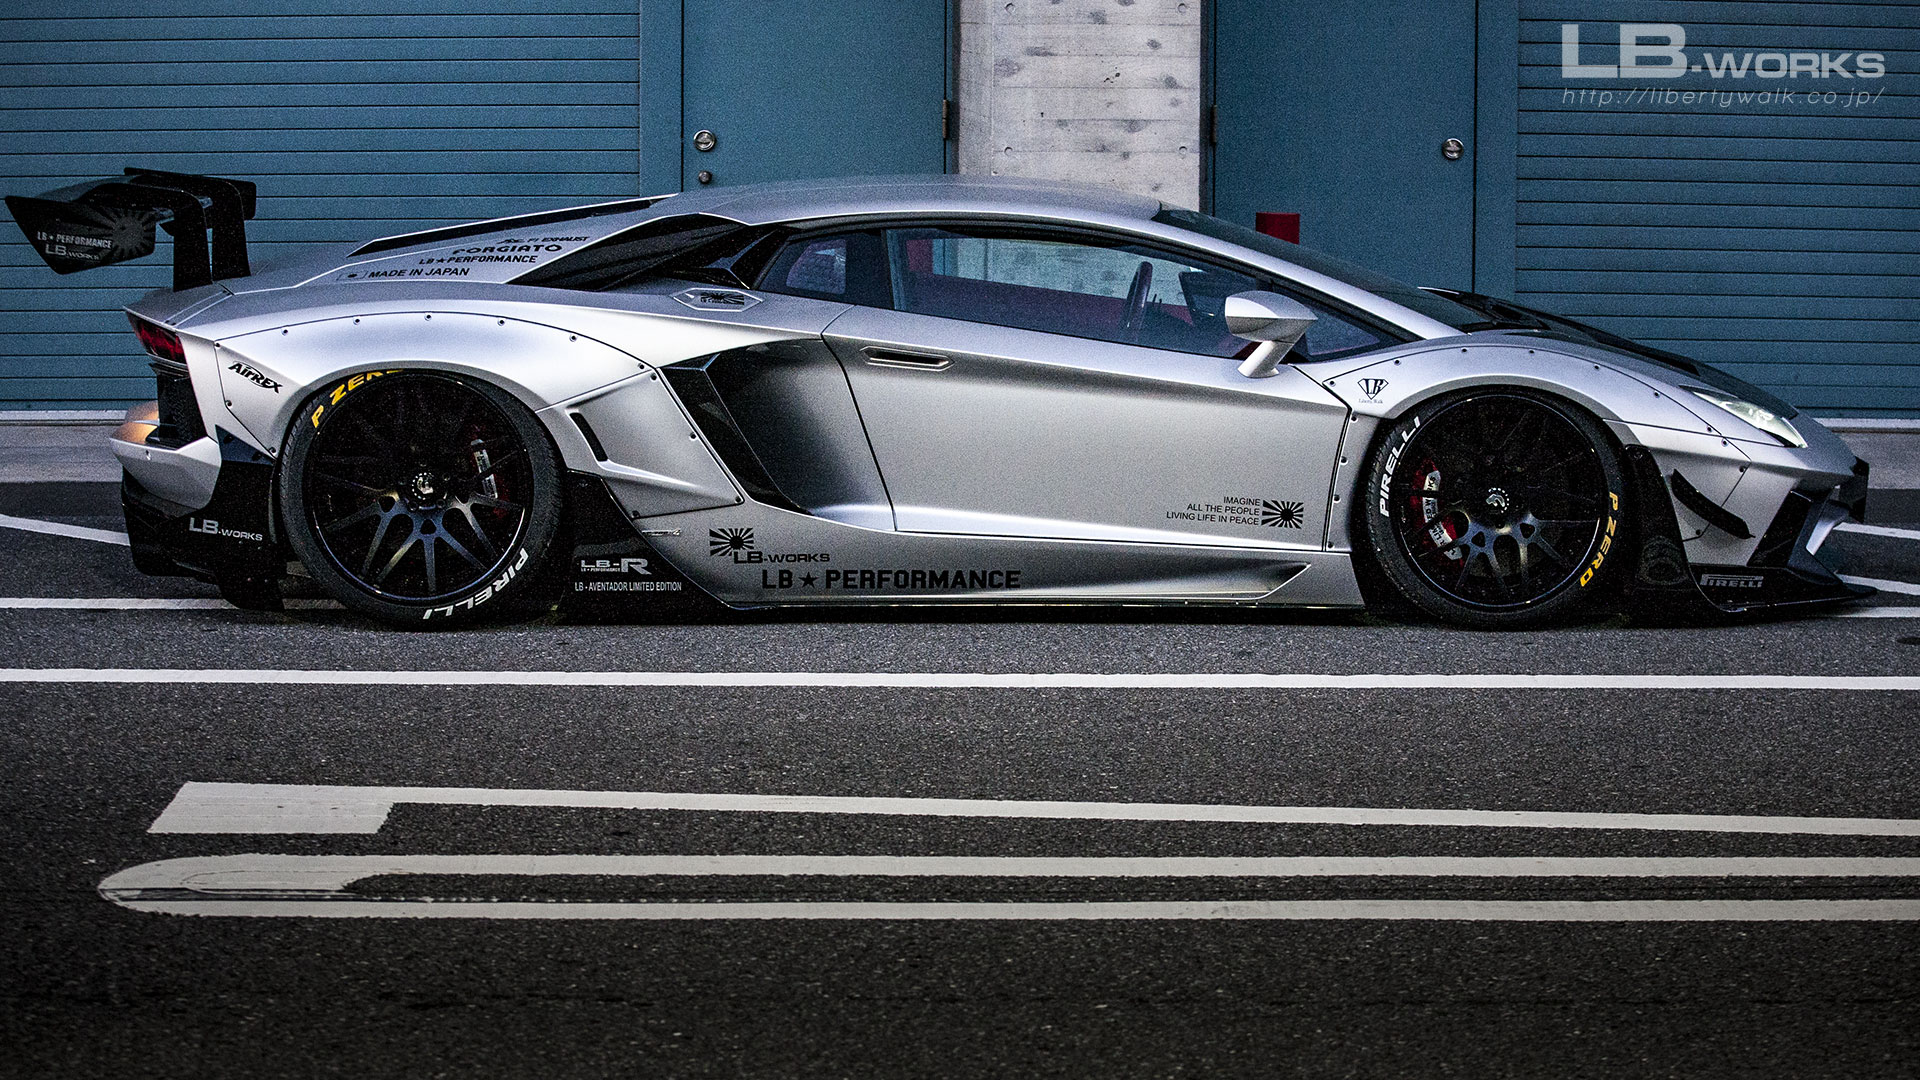 169 LB-WORKS Lamborghini AVENTADOR Limited Edition